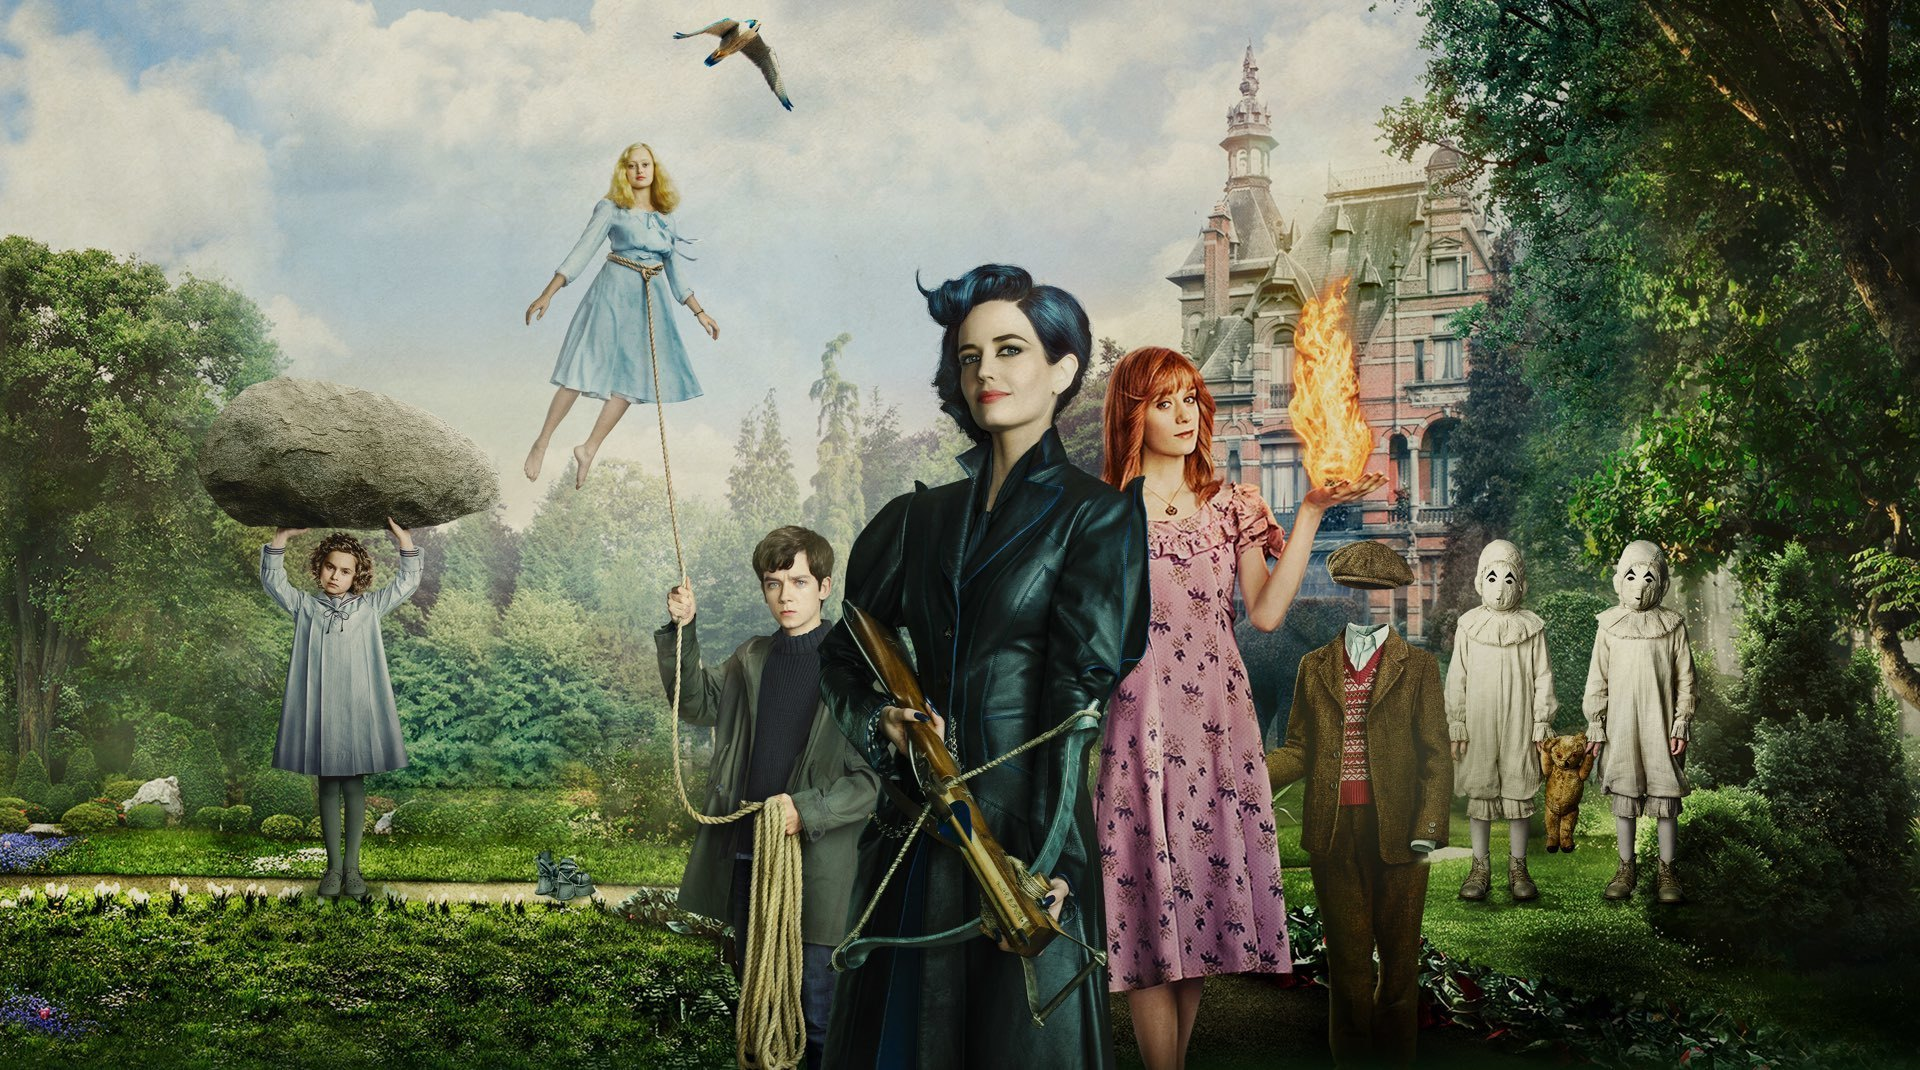 A still image from Miss Peregrine's Home for Peculiar Children